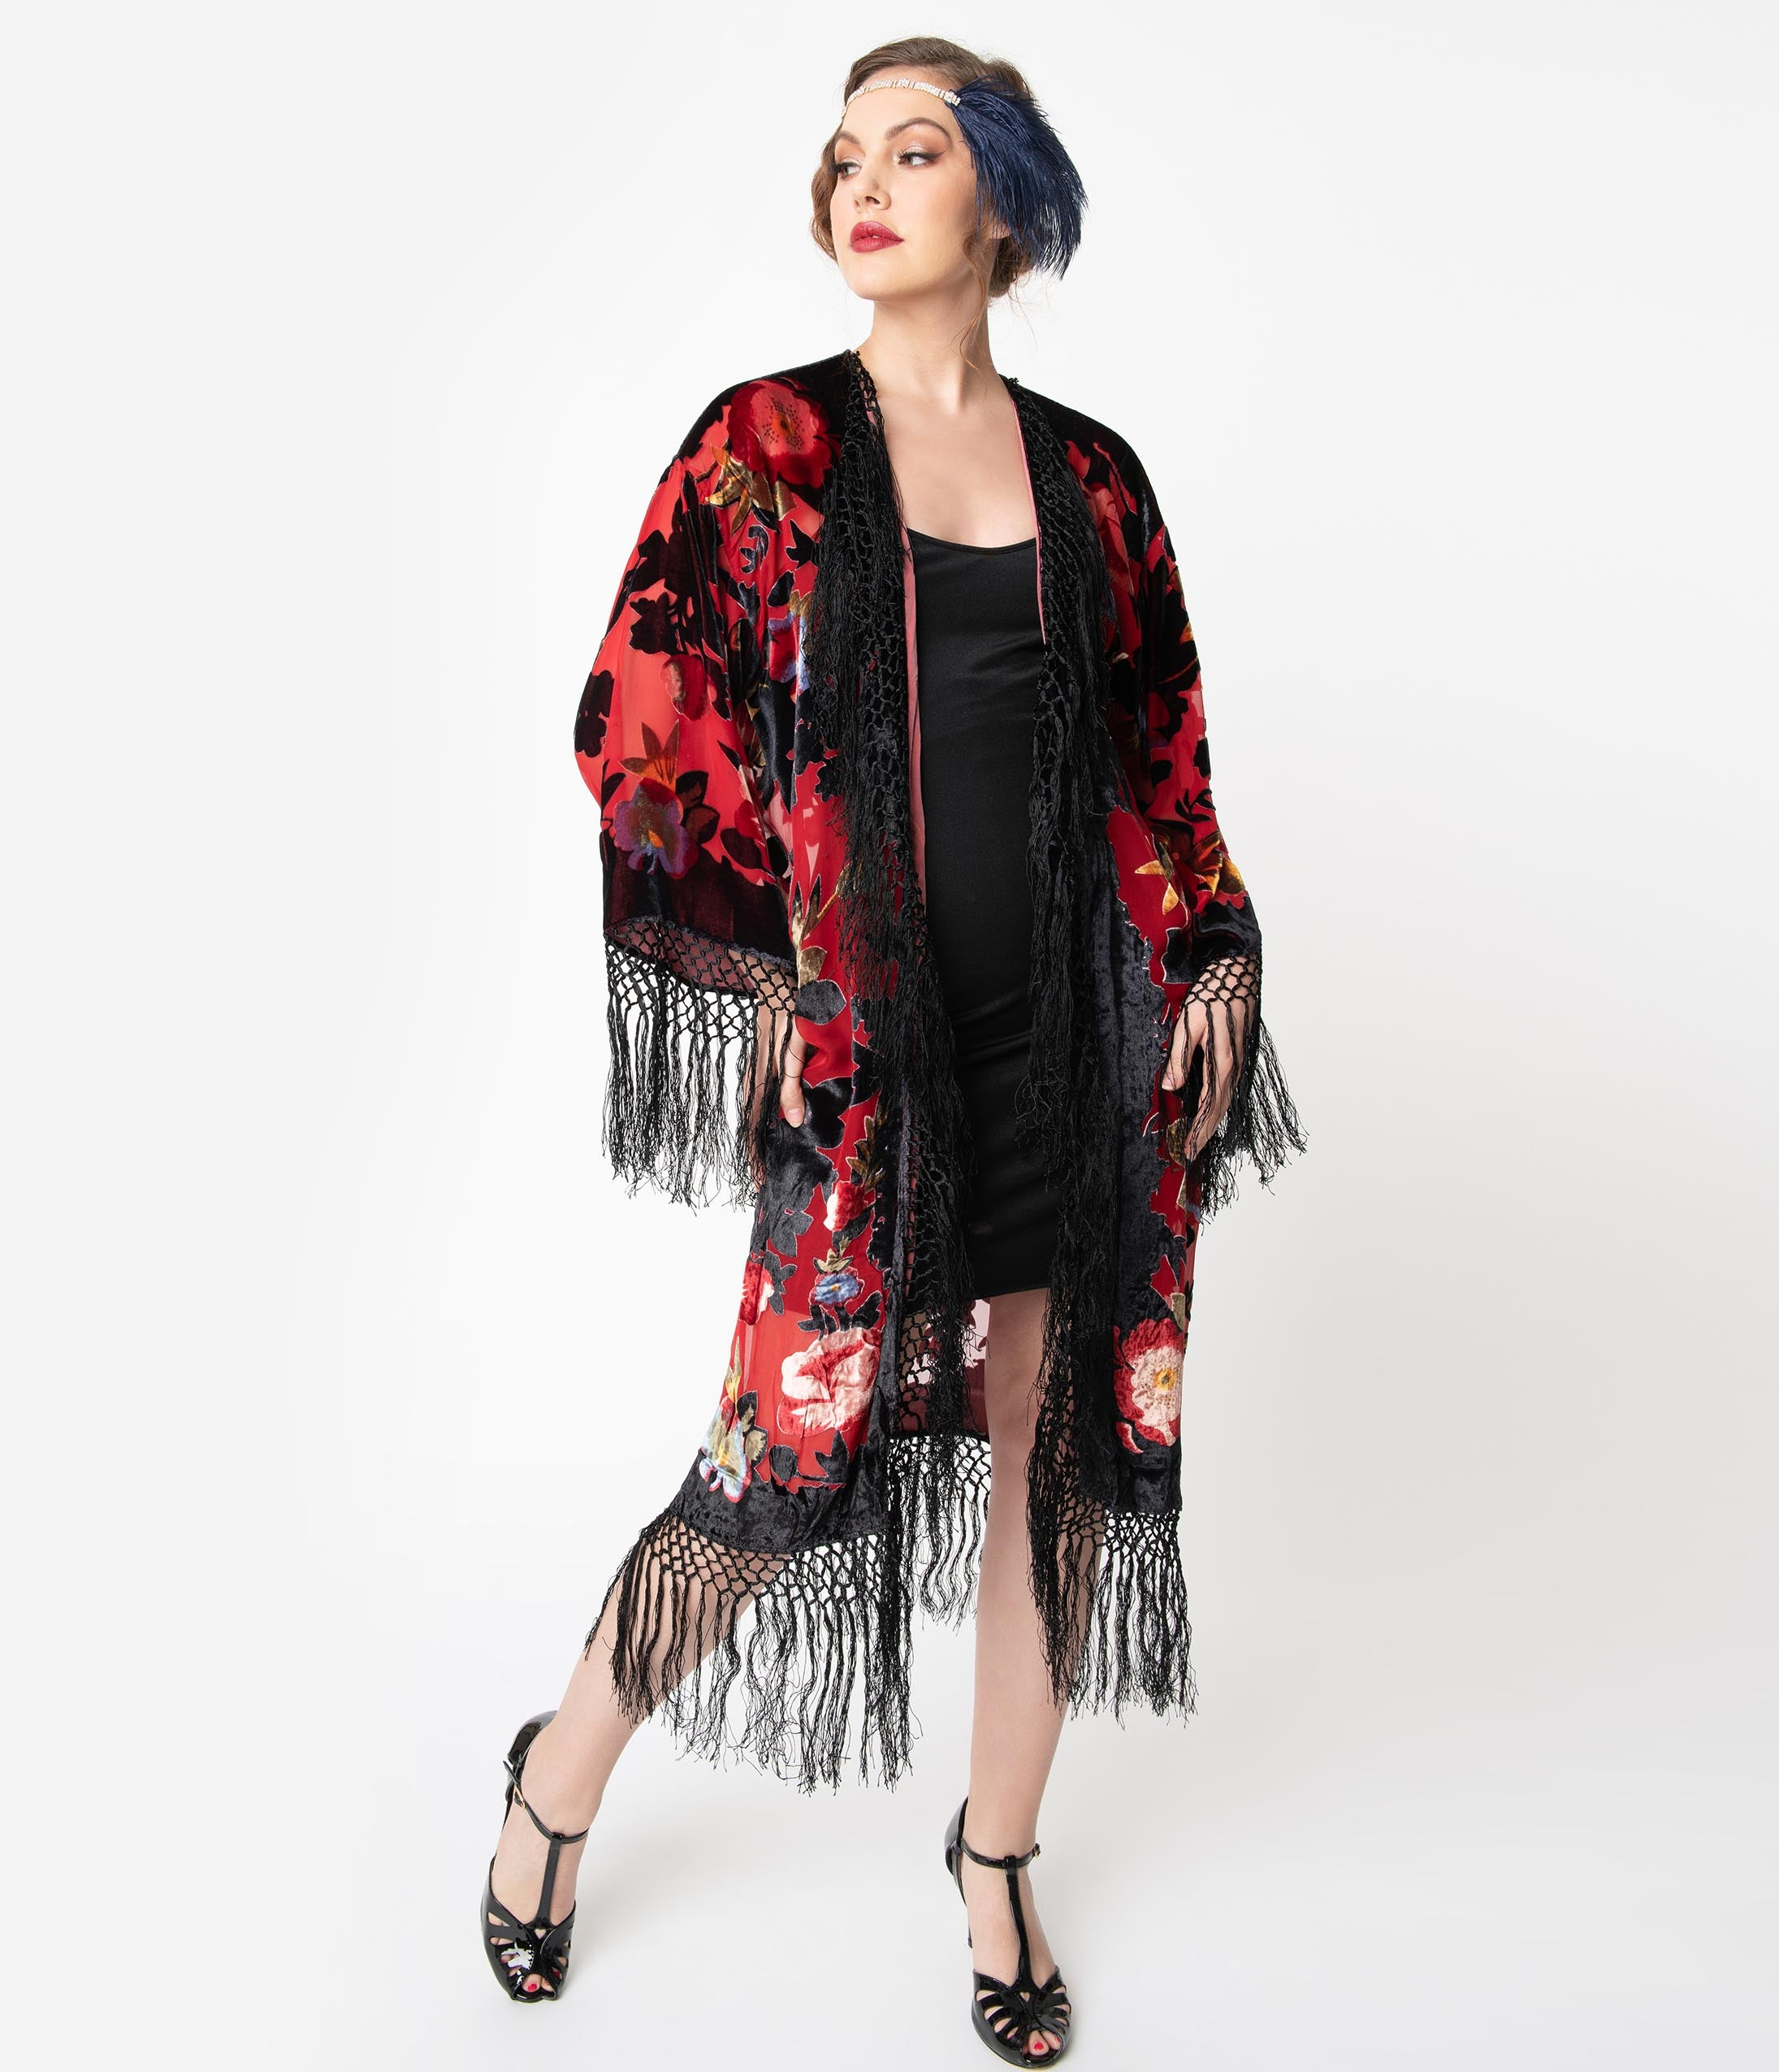 Vintage Coats & Jackets | Retro Coats and Jackets 1920S Style Red  Black Floral Devore Velvet Fringe Flapper Coat $202.00 AT vintagedancer.com